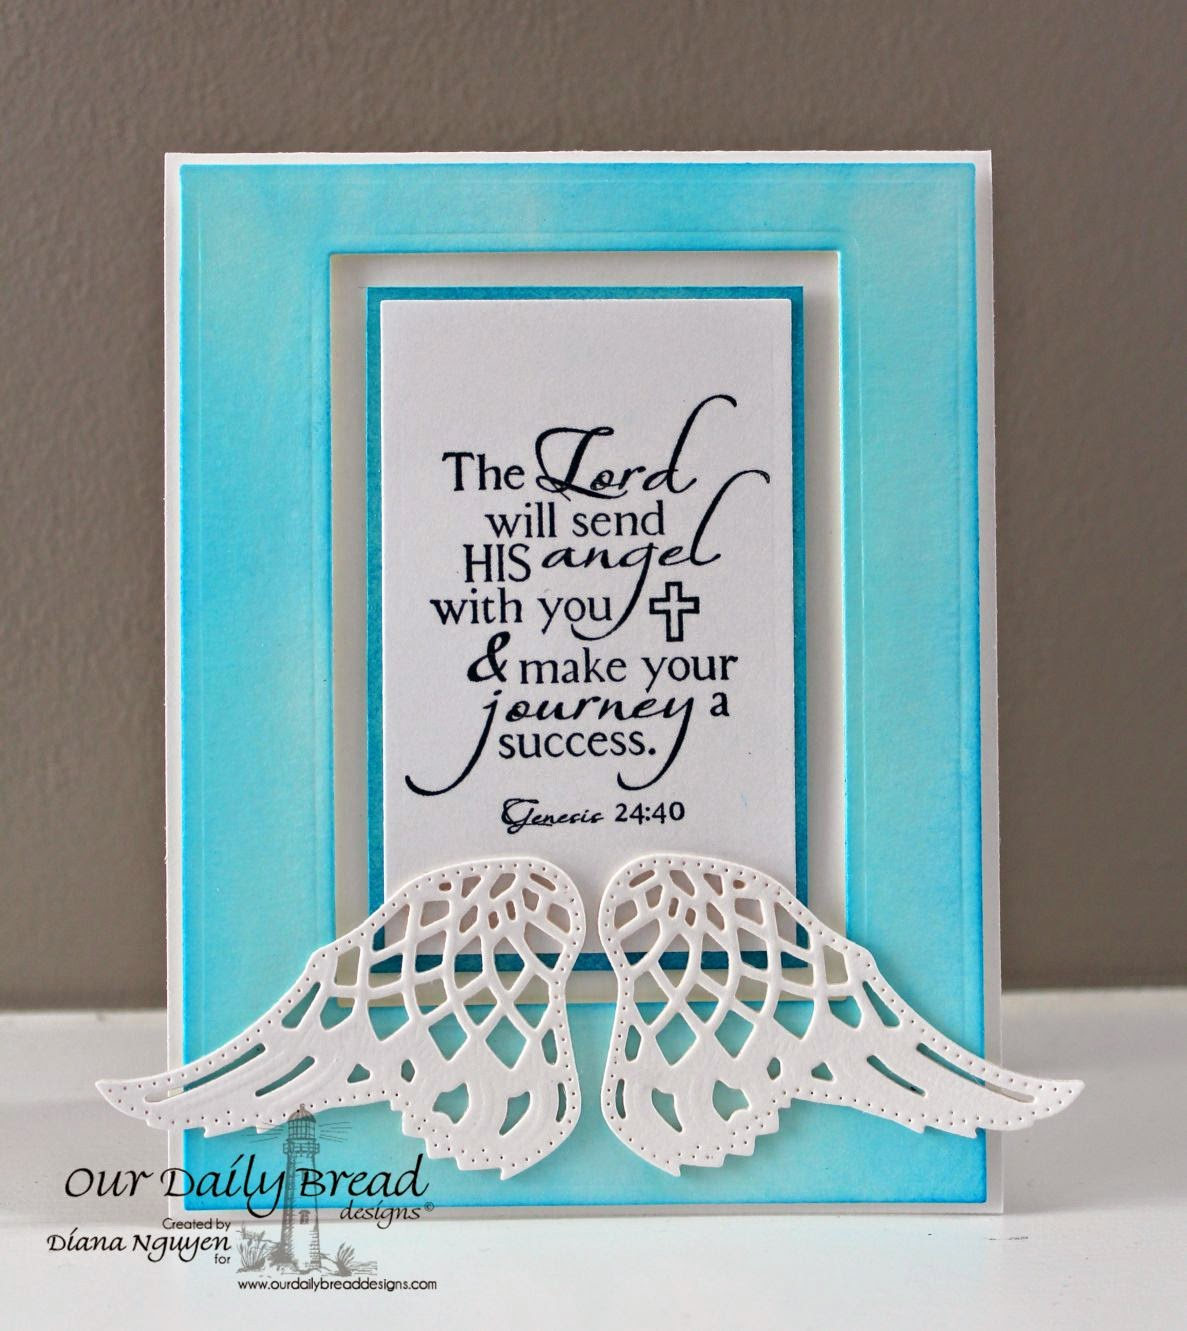 Diana Nguyen, Angel Wings, ODBD, Our daily Bread designs, Holy Angels, cas, card